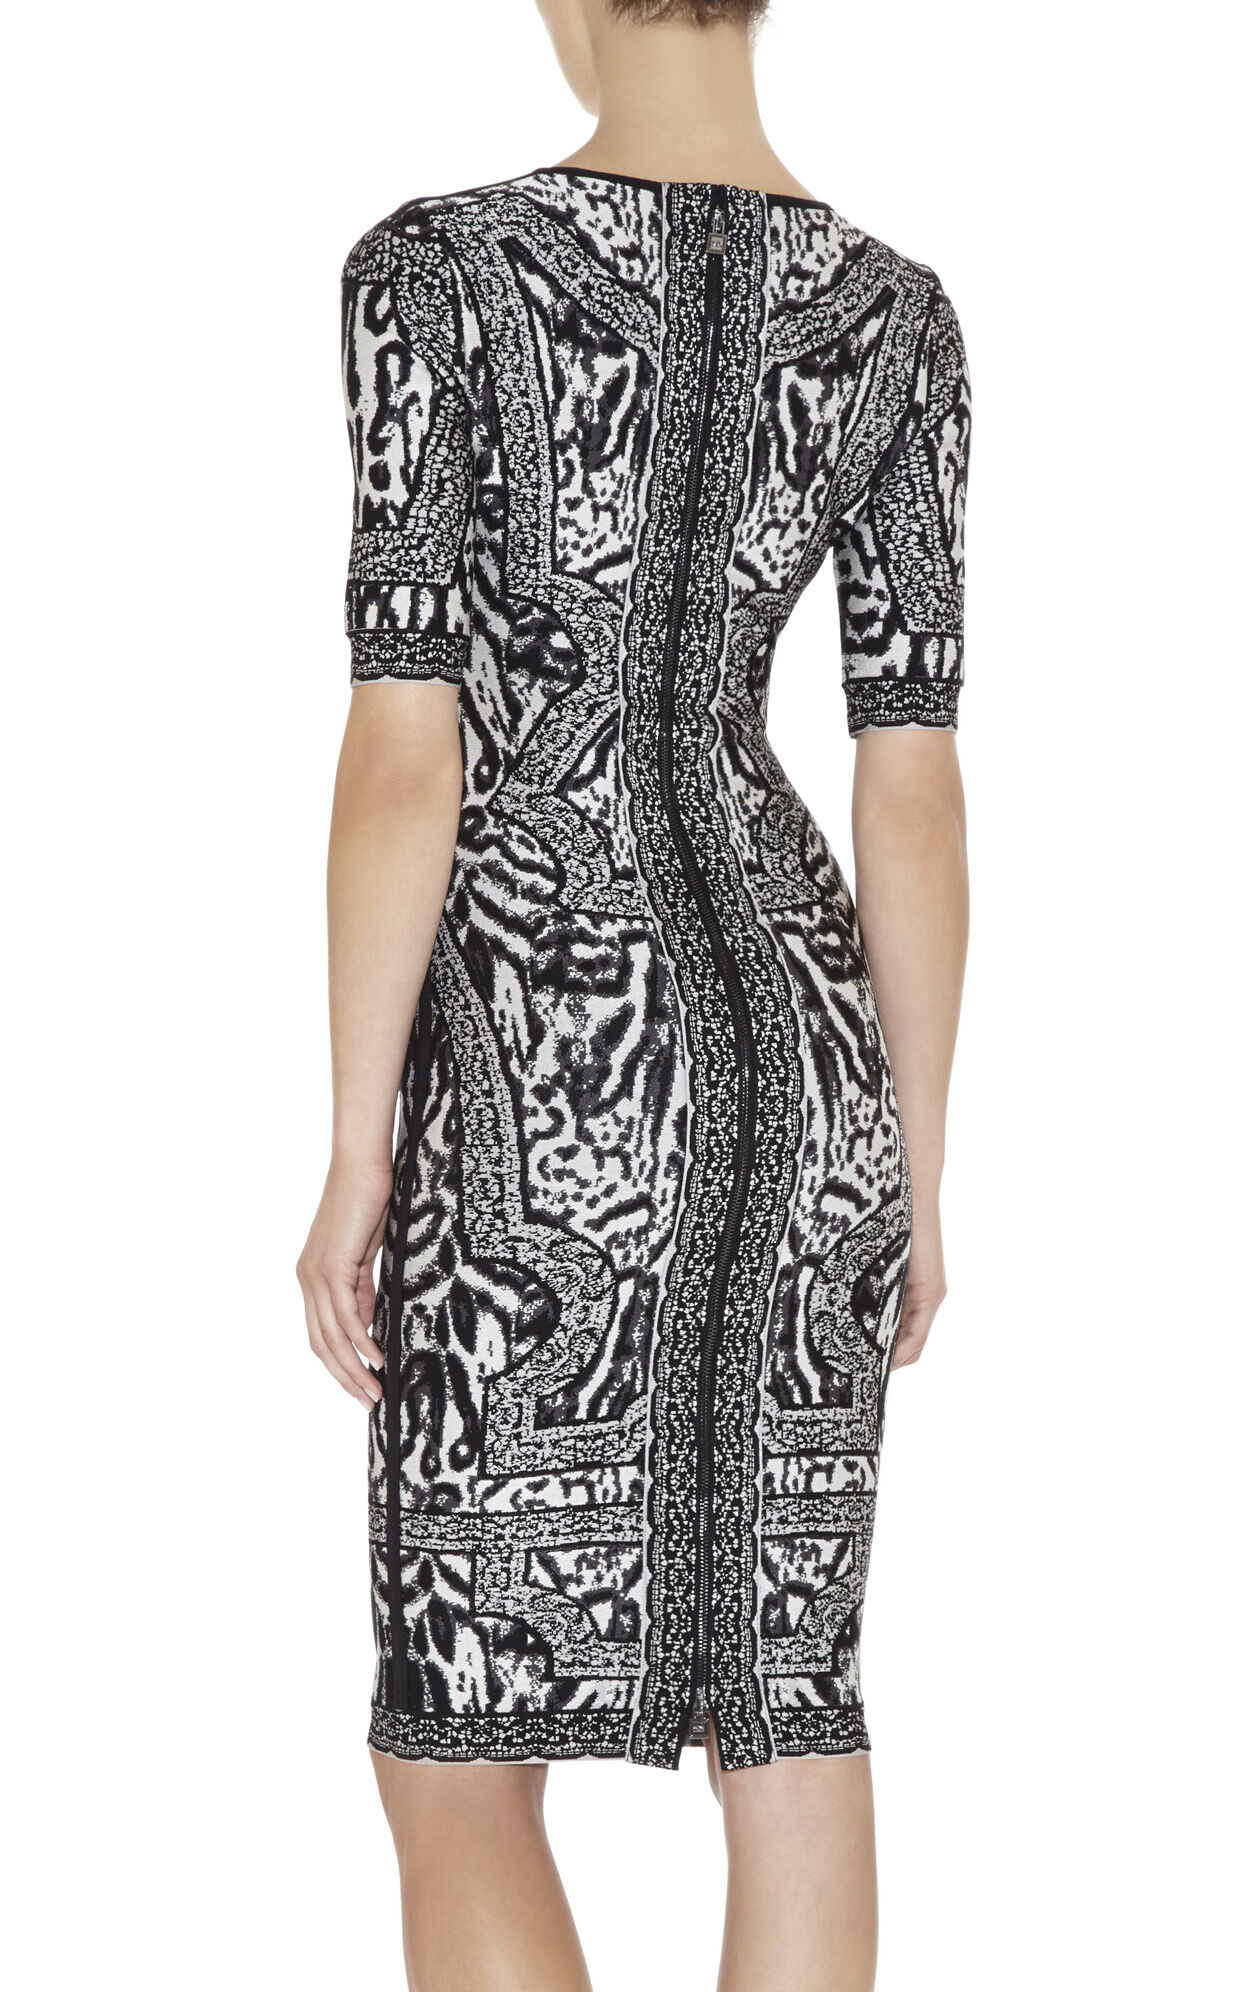 Zola Ocelot and Antique-Lace Jacquard Dress